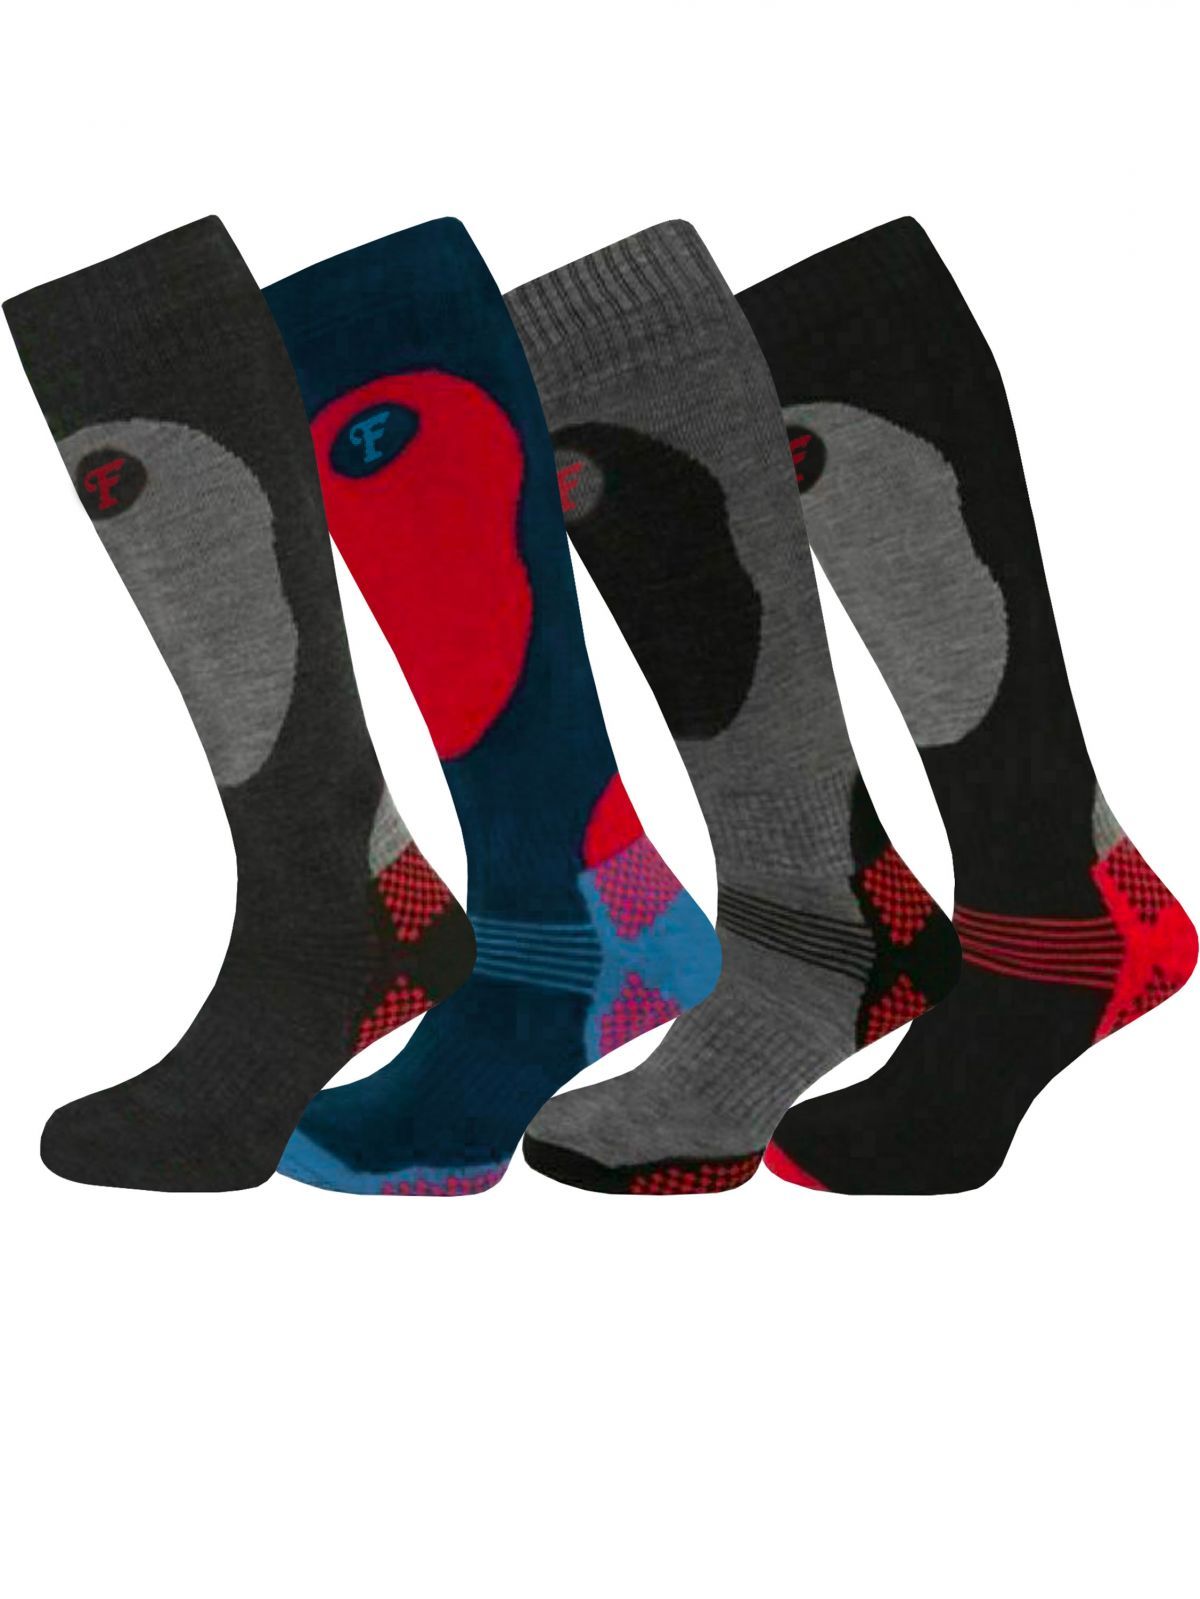 Accessories   Mens Winter- Warm Thermal Ski Socks Multi Pack , From £3.99, Guest Brand, in Multicolour   Raw Denim Outlet